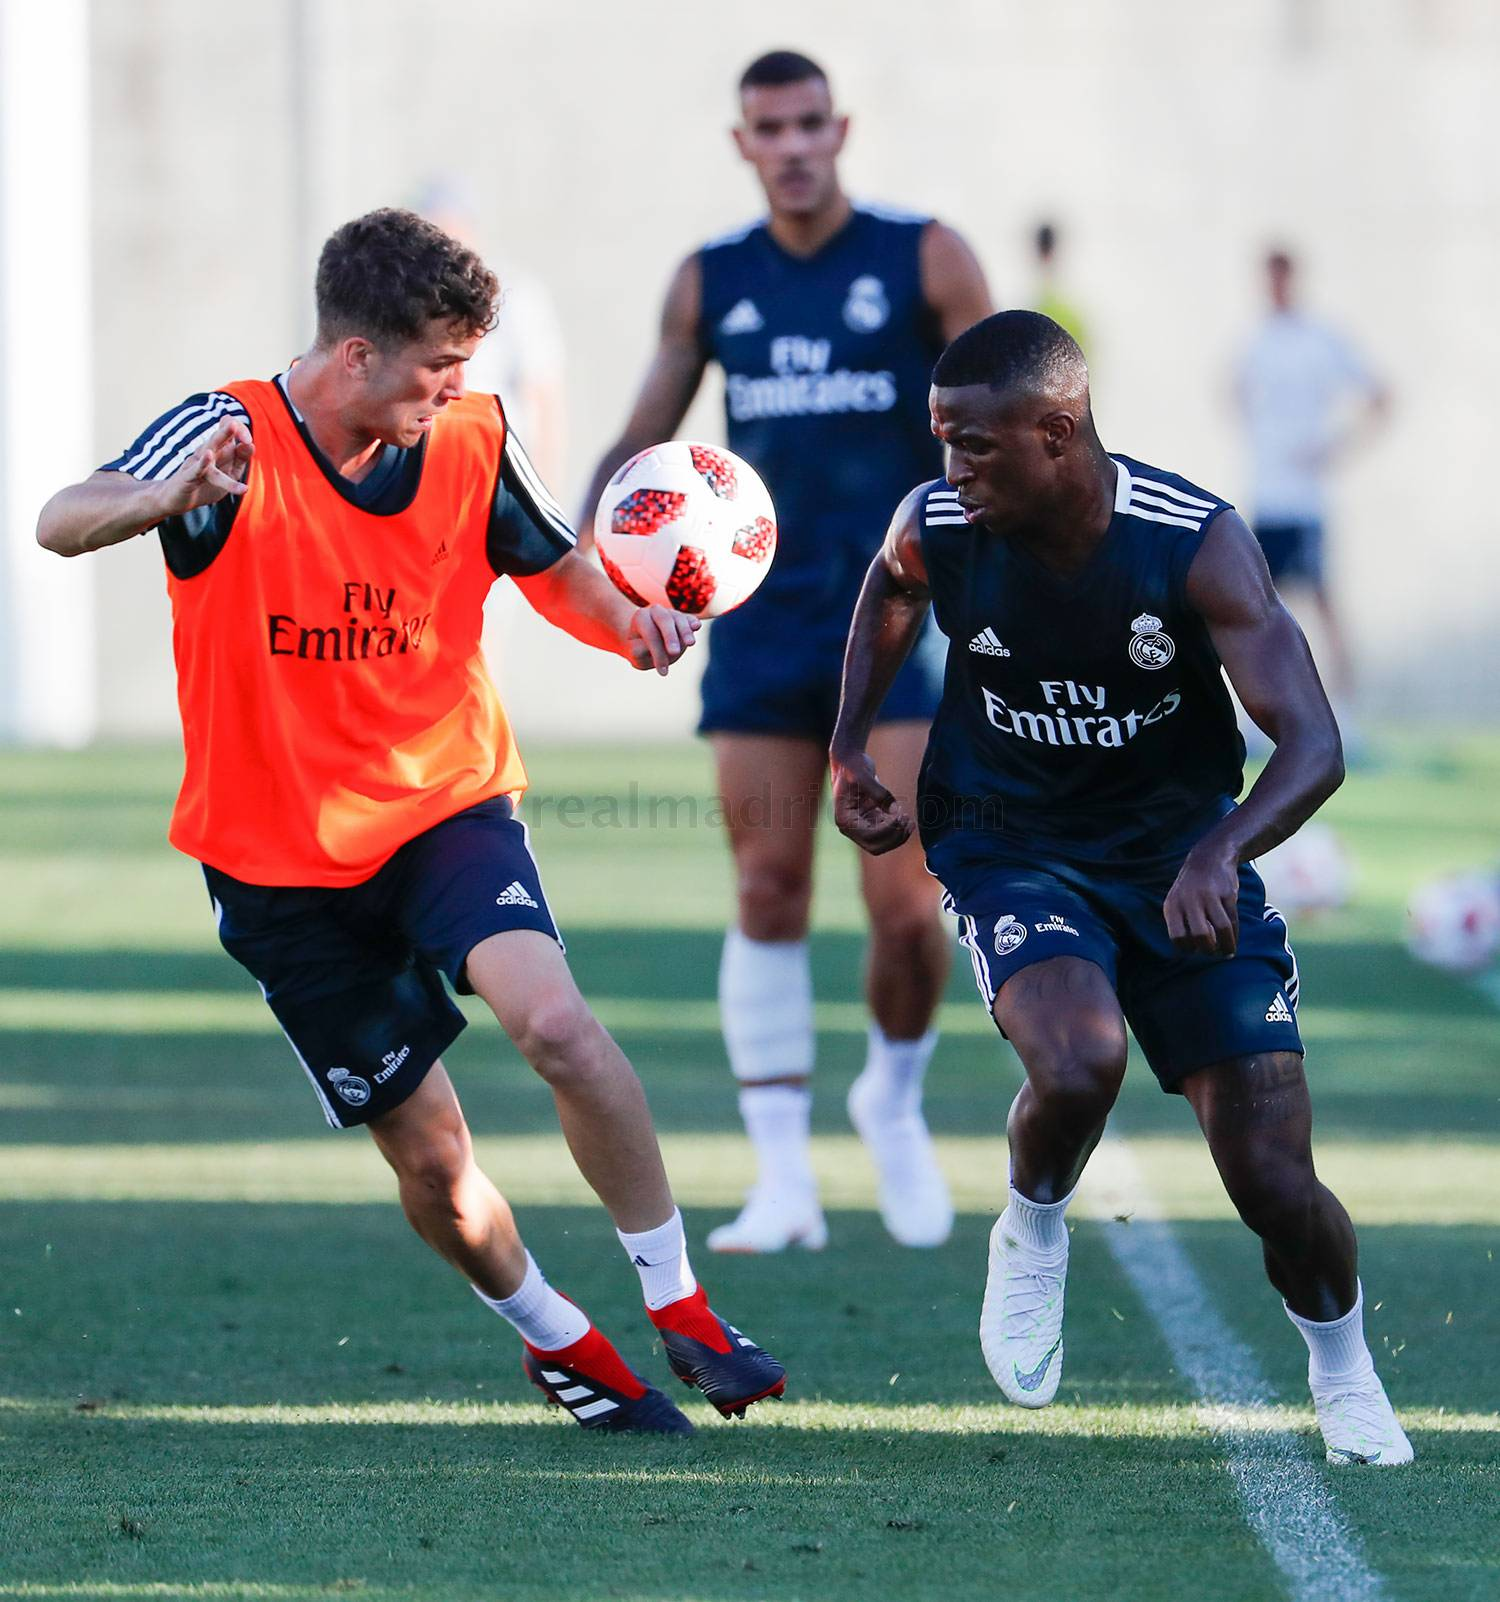 Real Madrid - Entrenamiento del Real Madrid - 27-07-2018